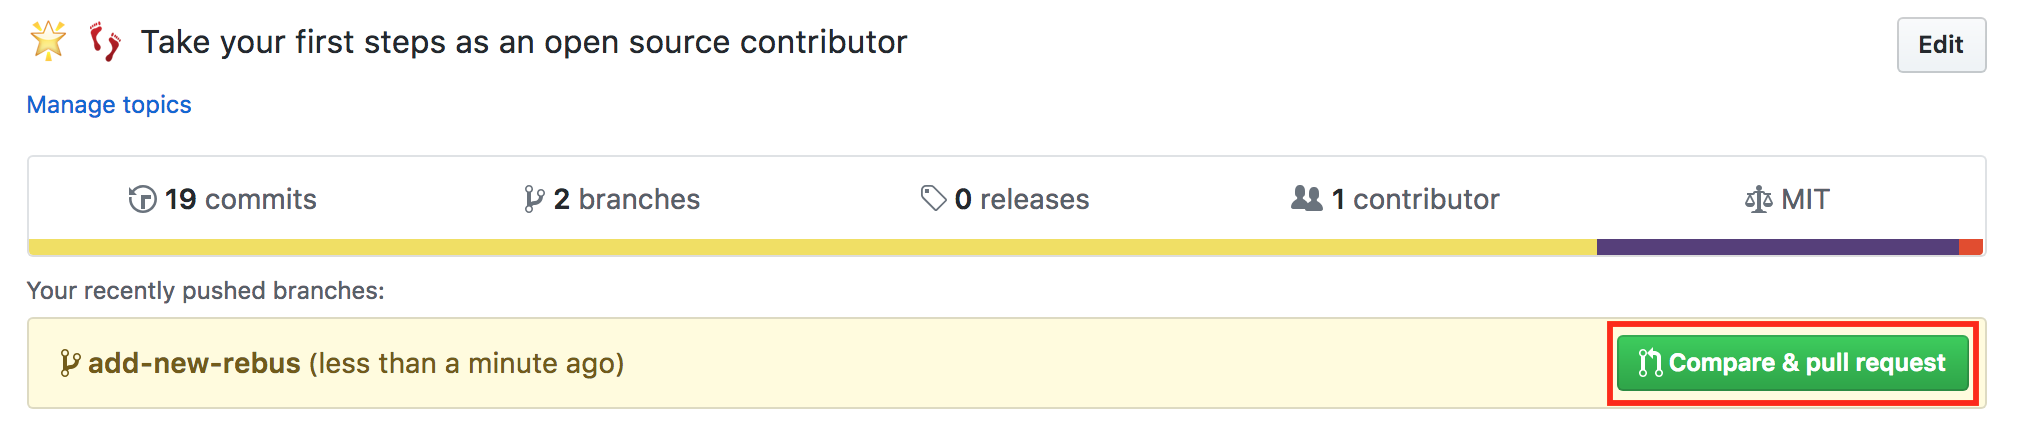 Compare and pull request